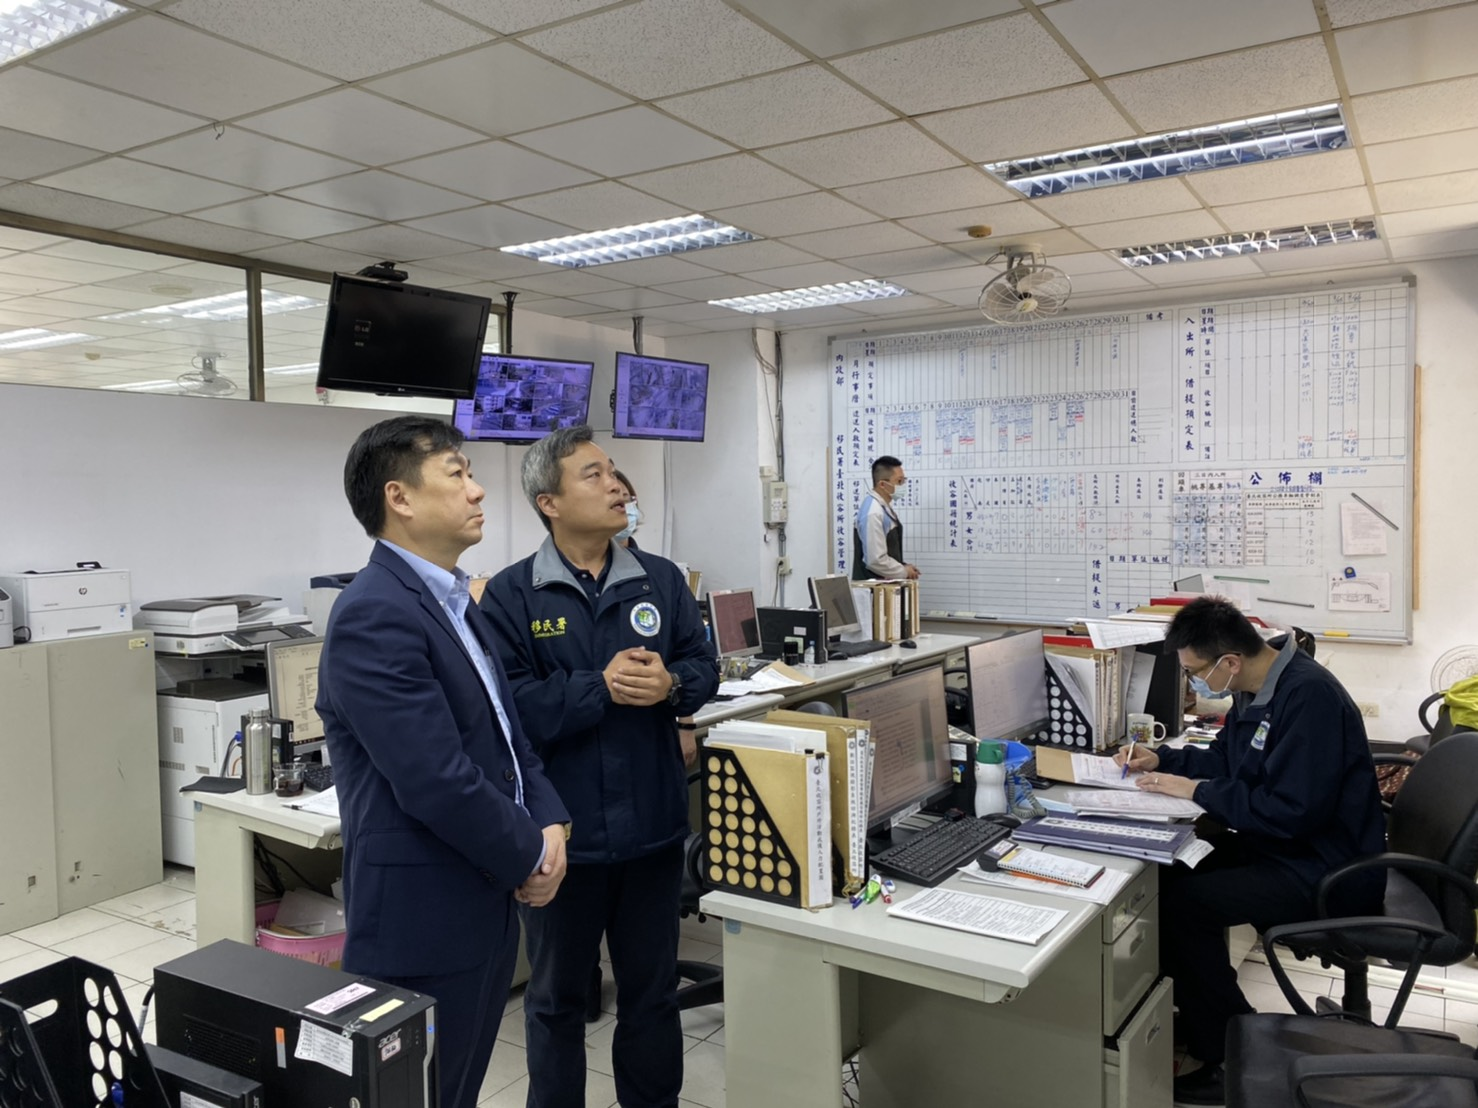 Deputy Minister of NIA, Chen Zongyan (陳宗彥), inspects disease control measures in person. Source: NIA